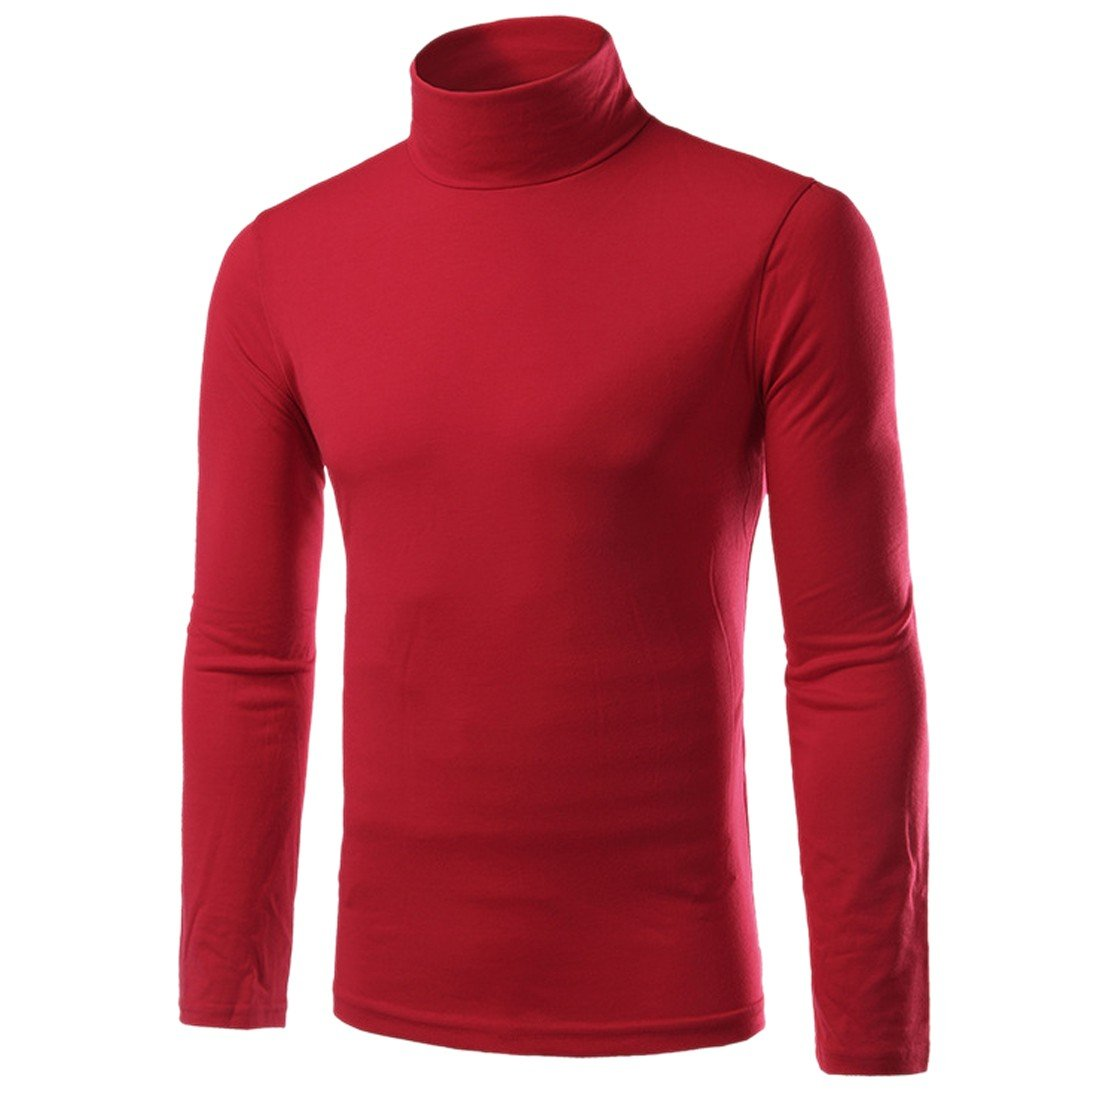 Paixpays Mens Casual Basic Turtleneck Slim Fit Pullover Pullover Sweaters Tops A2006S3103